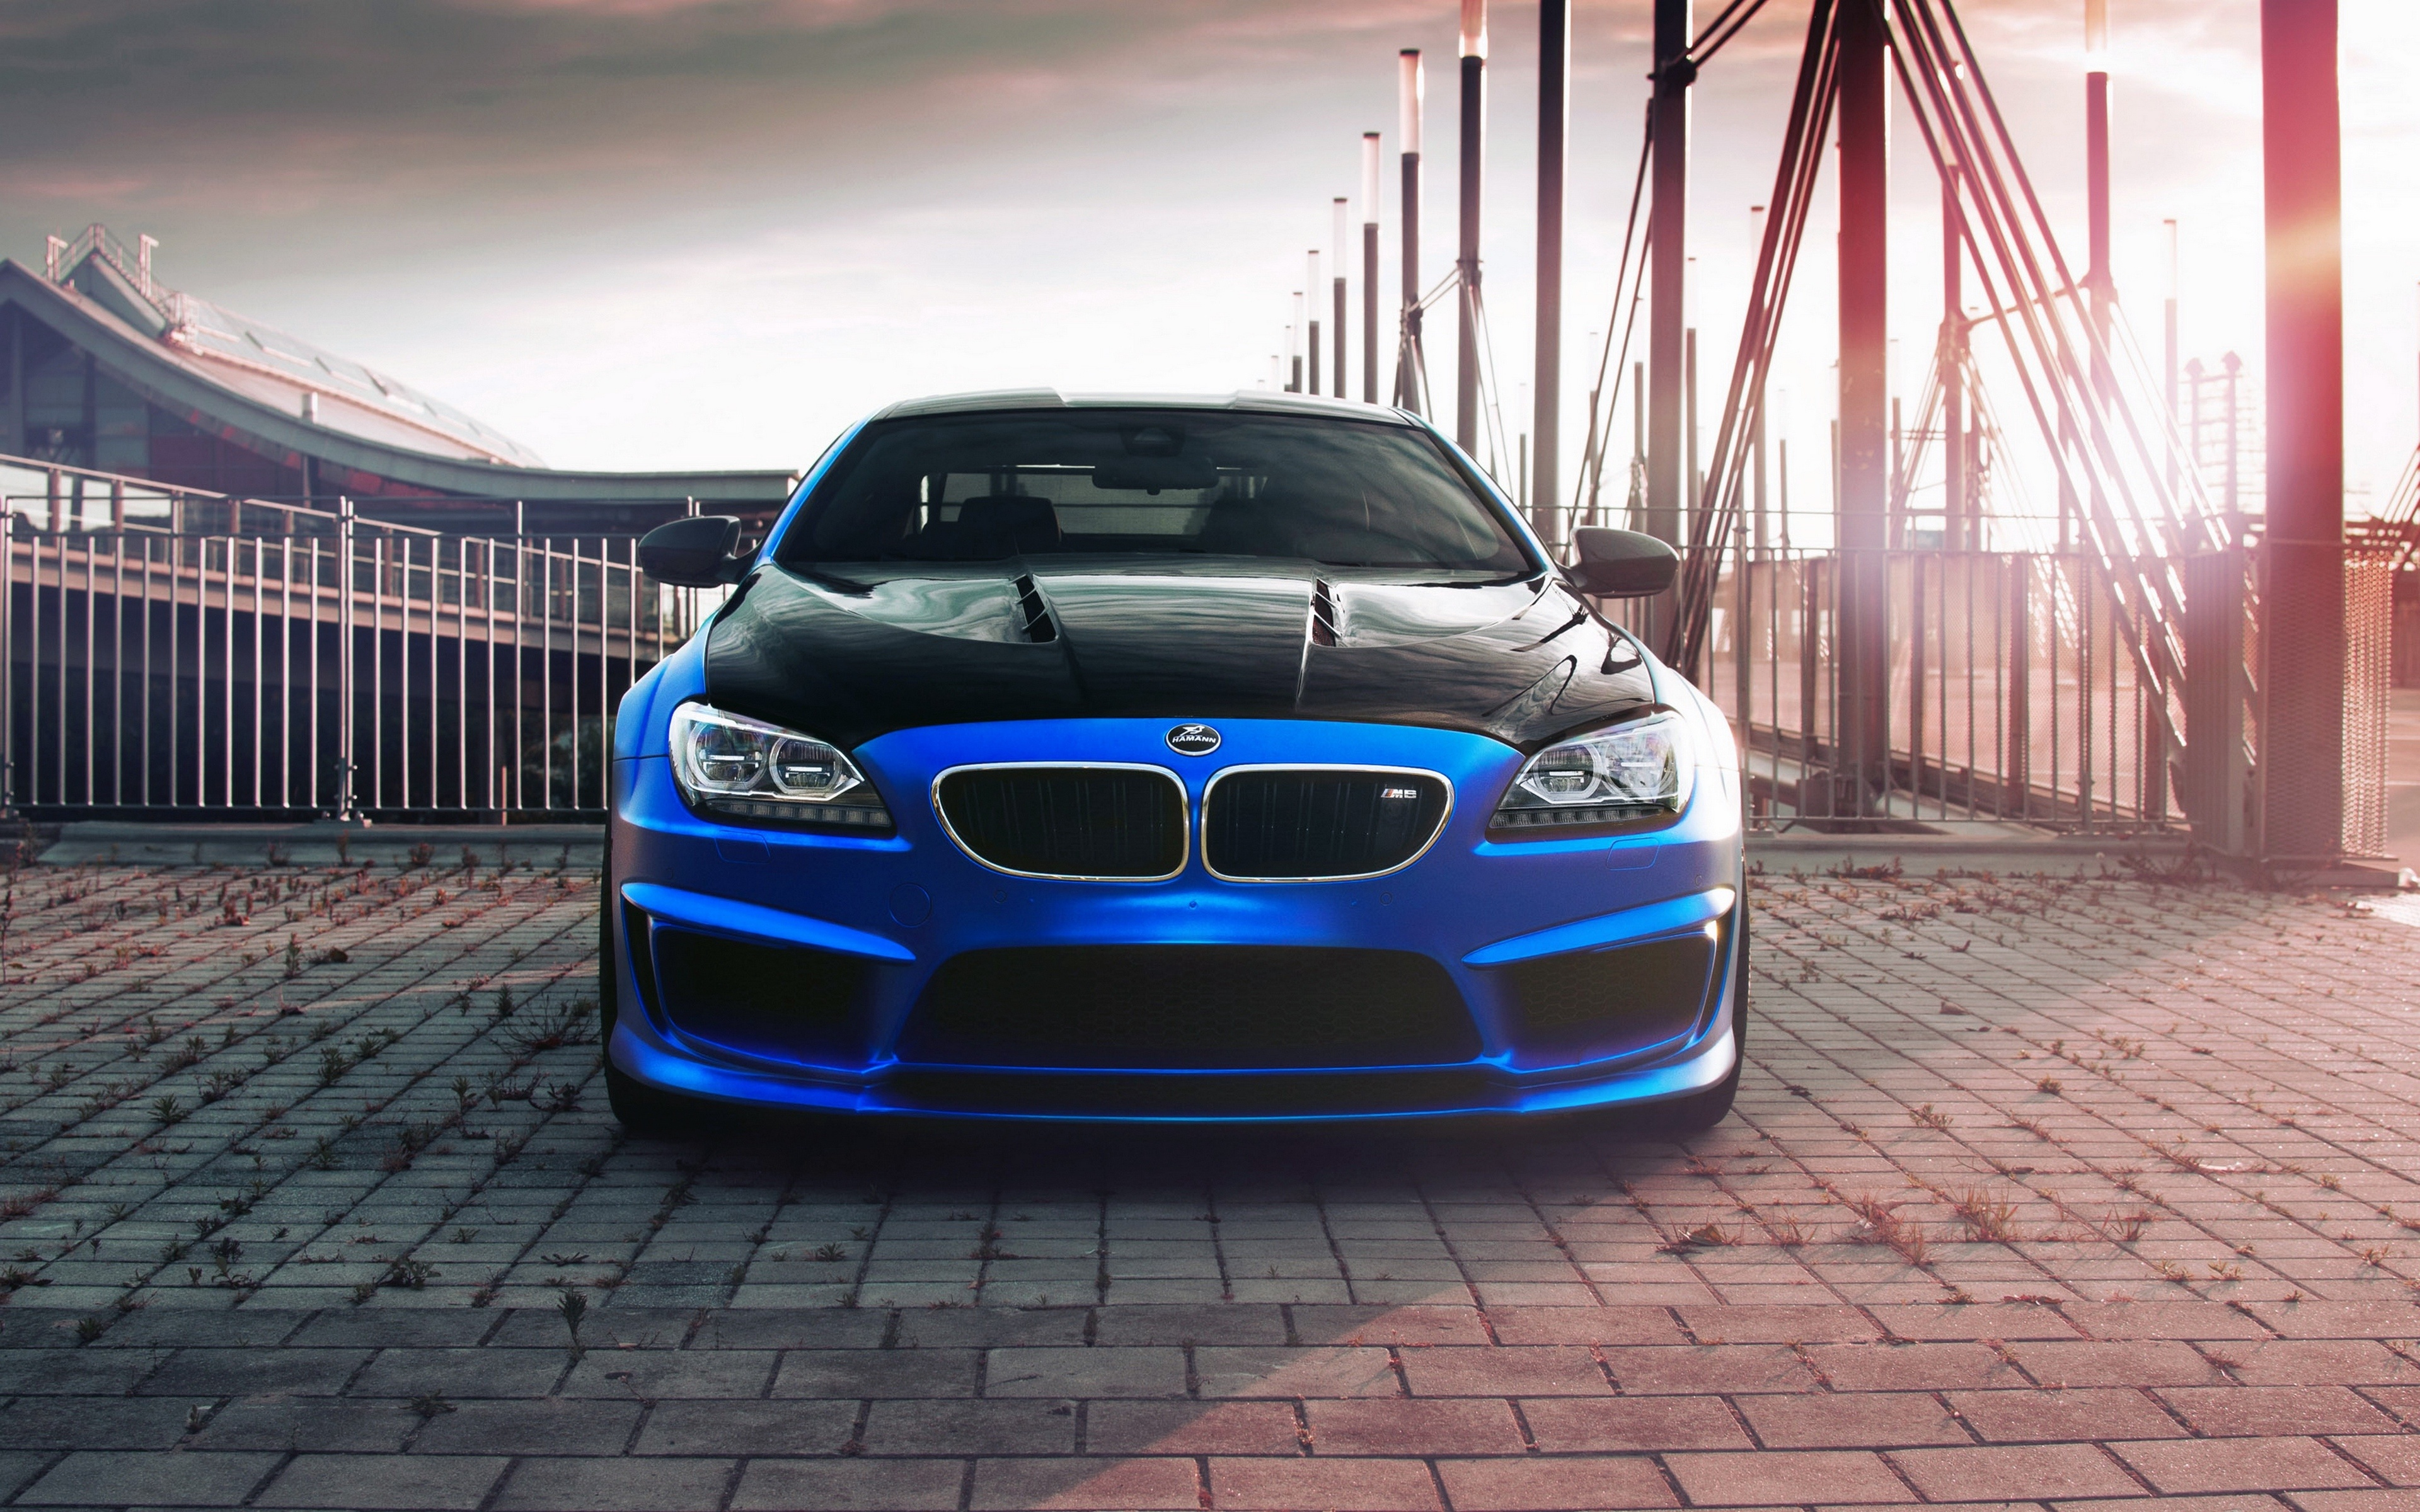 Download 3840x2400 Wallpaper Sports Edition Bmw Blue Car Front 4k Ultra Hd 16 10 Widescreen 3840x2400 Hd Image Background 7248